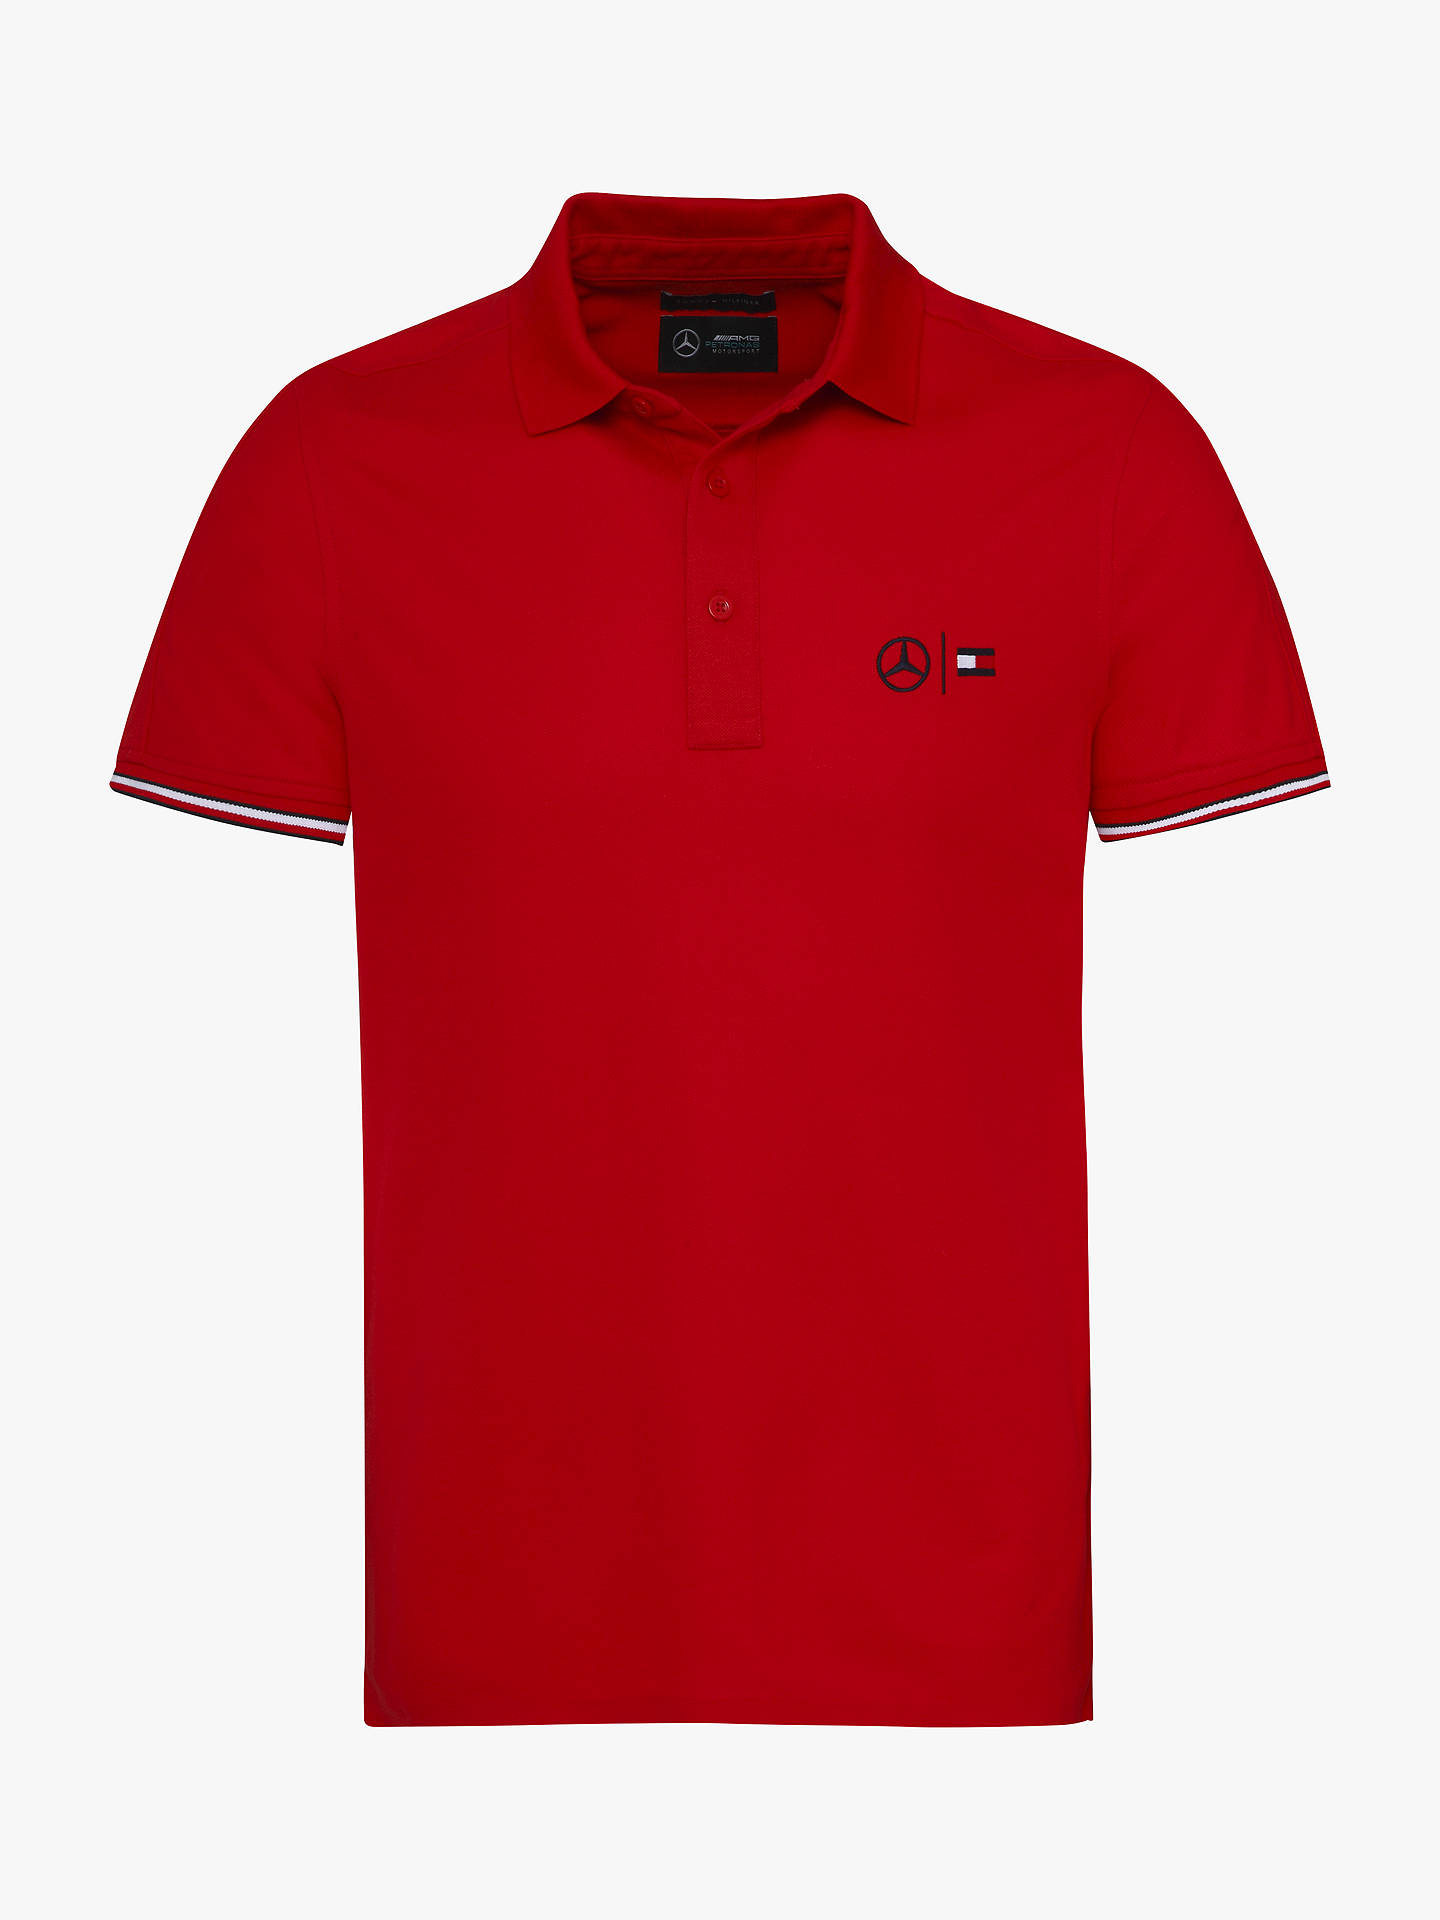 f7fd2003c Buy Tommy Hilfiger Mercedes Polo Shirt, Haute Red, S Online at  johnlewis.com ...